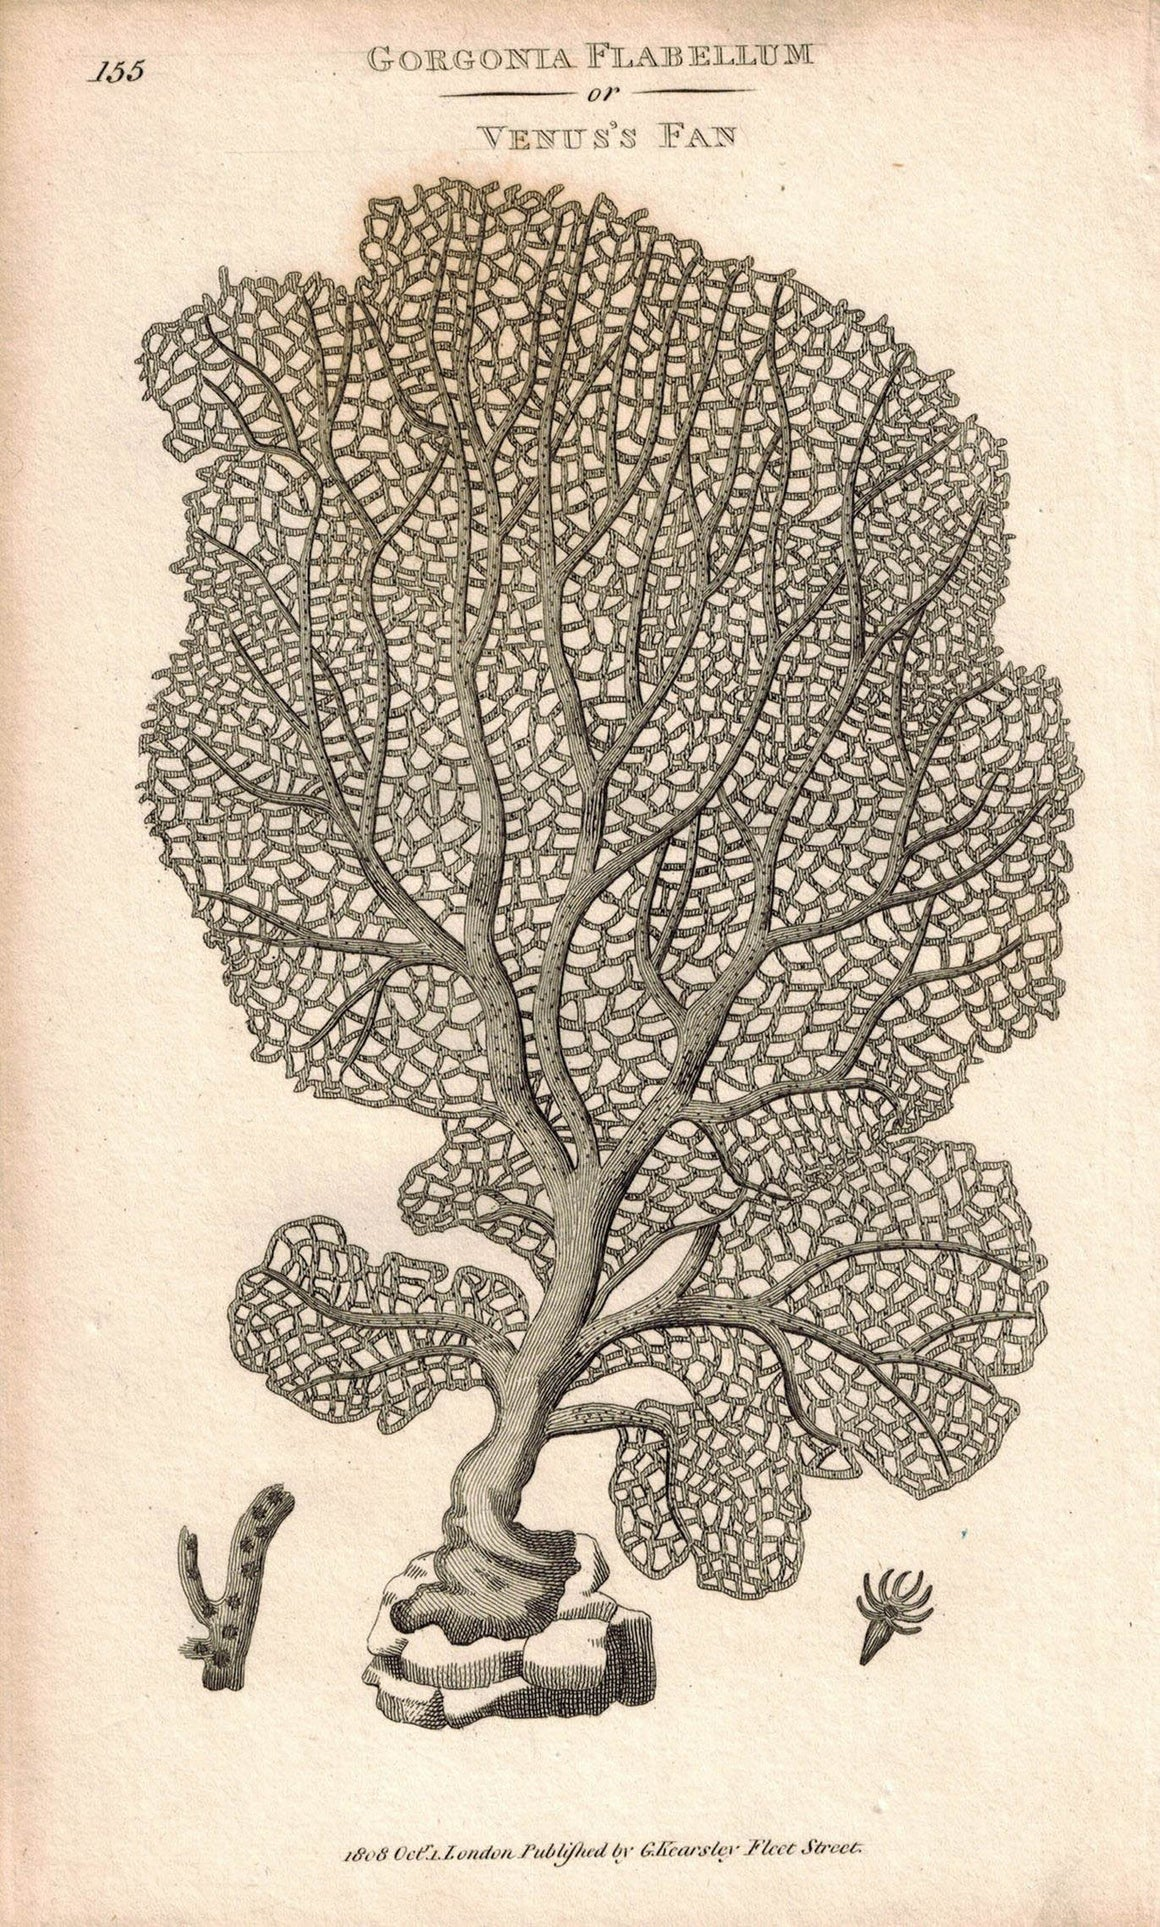 Gorgonia Flabellum or Venus's Sea Fan Coral 1809 Original Engraving Shaw Print